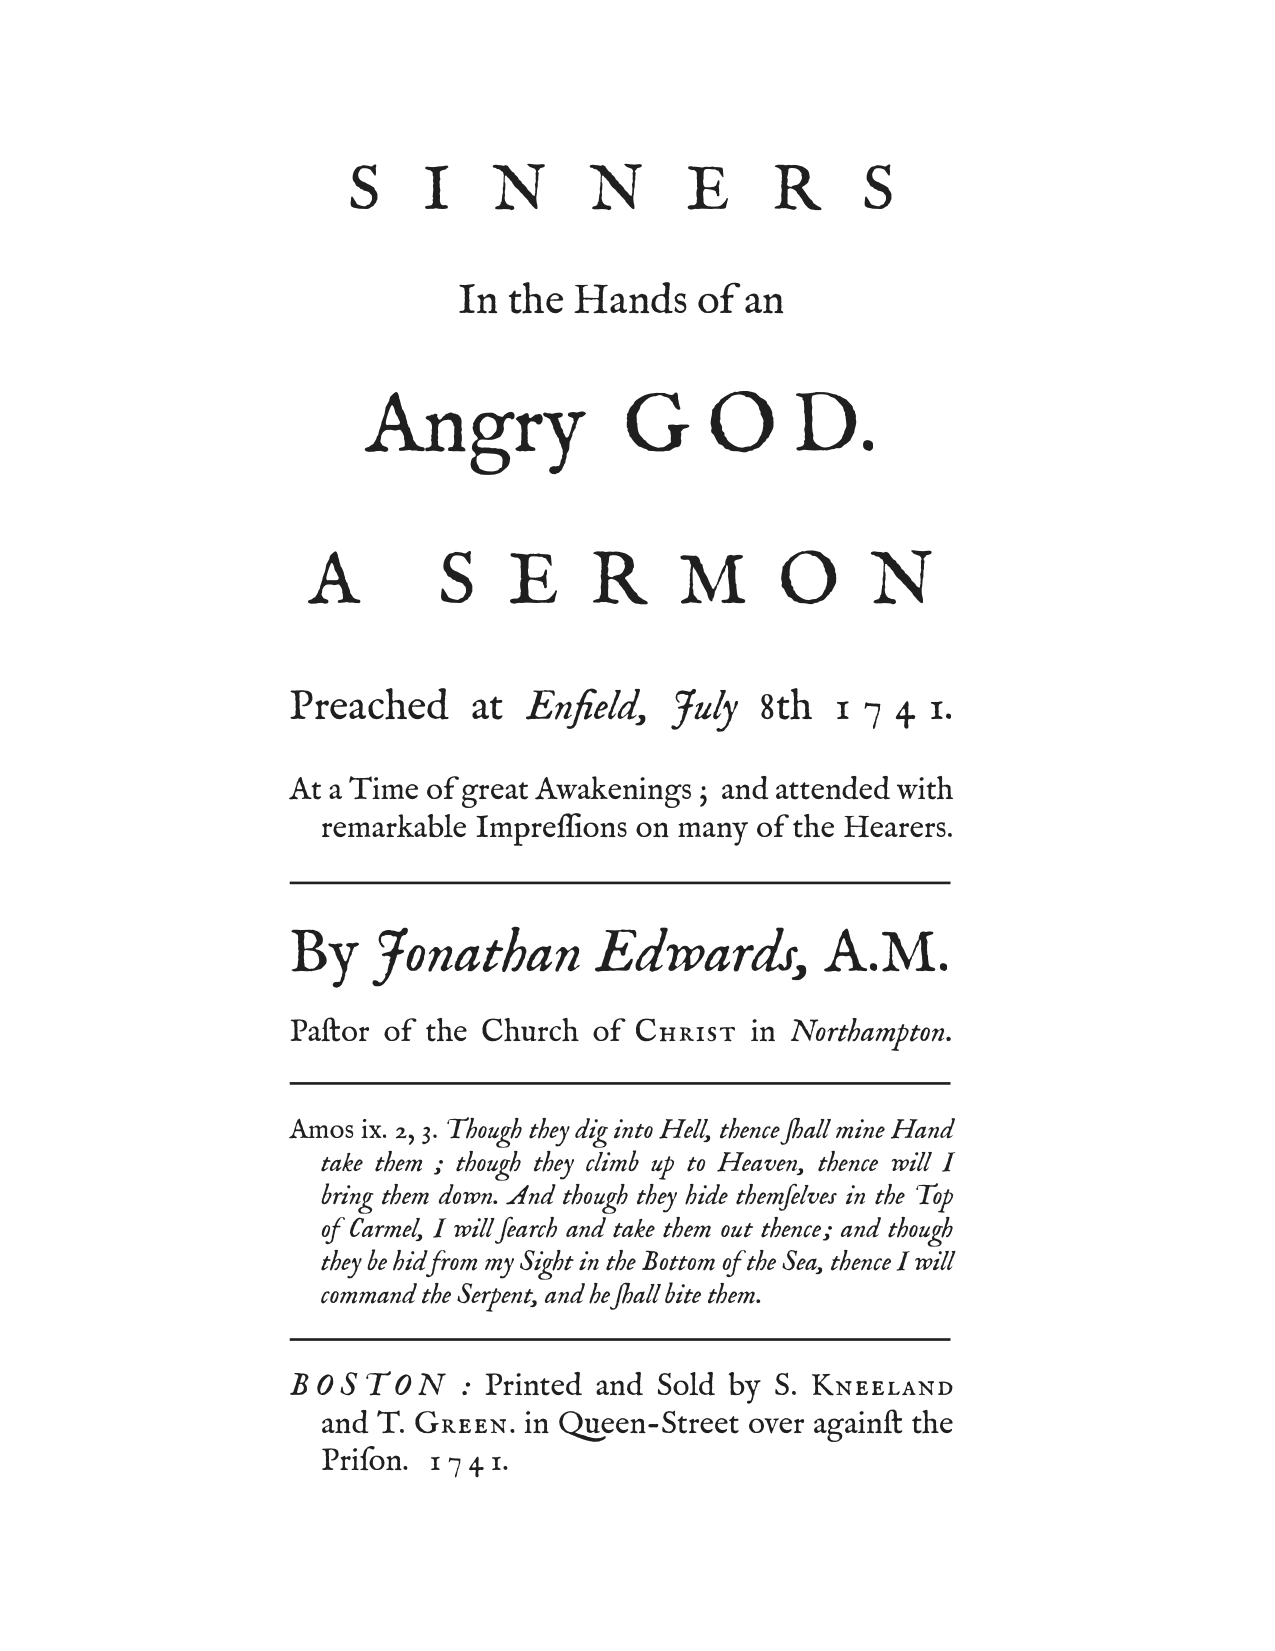 Sinners in the hands of an angry god essay ideas